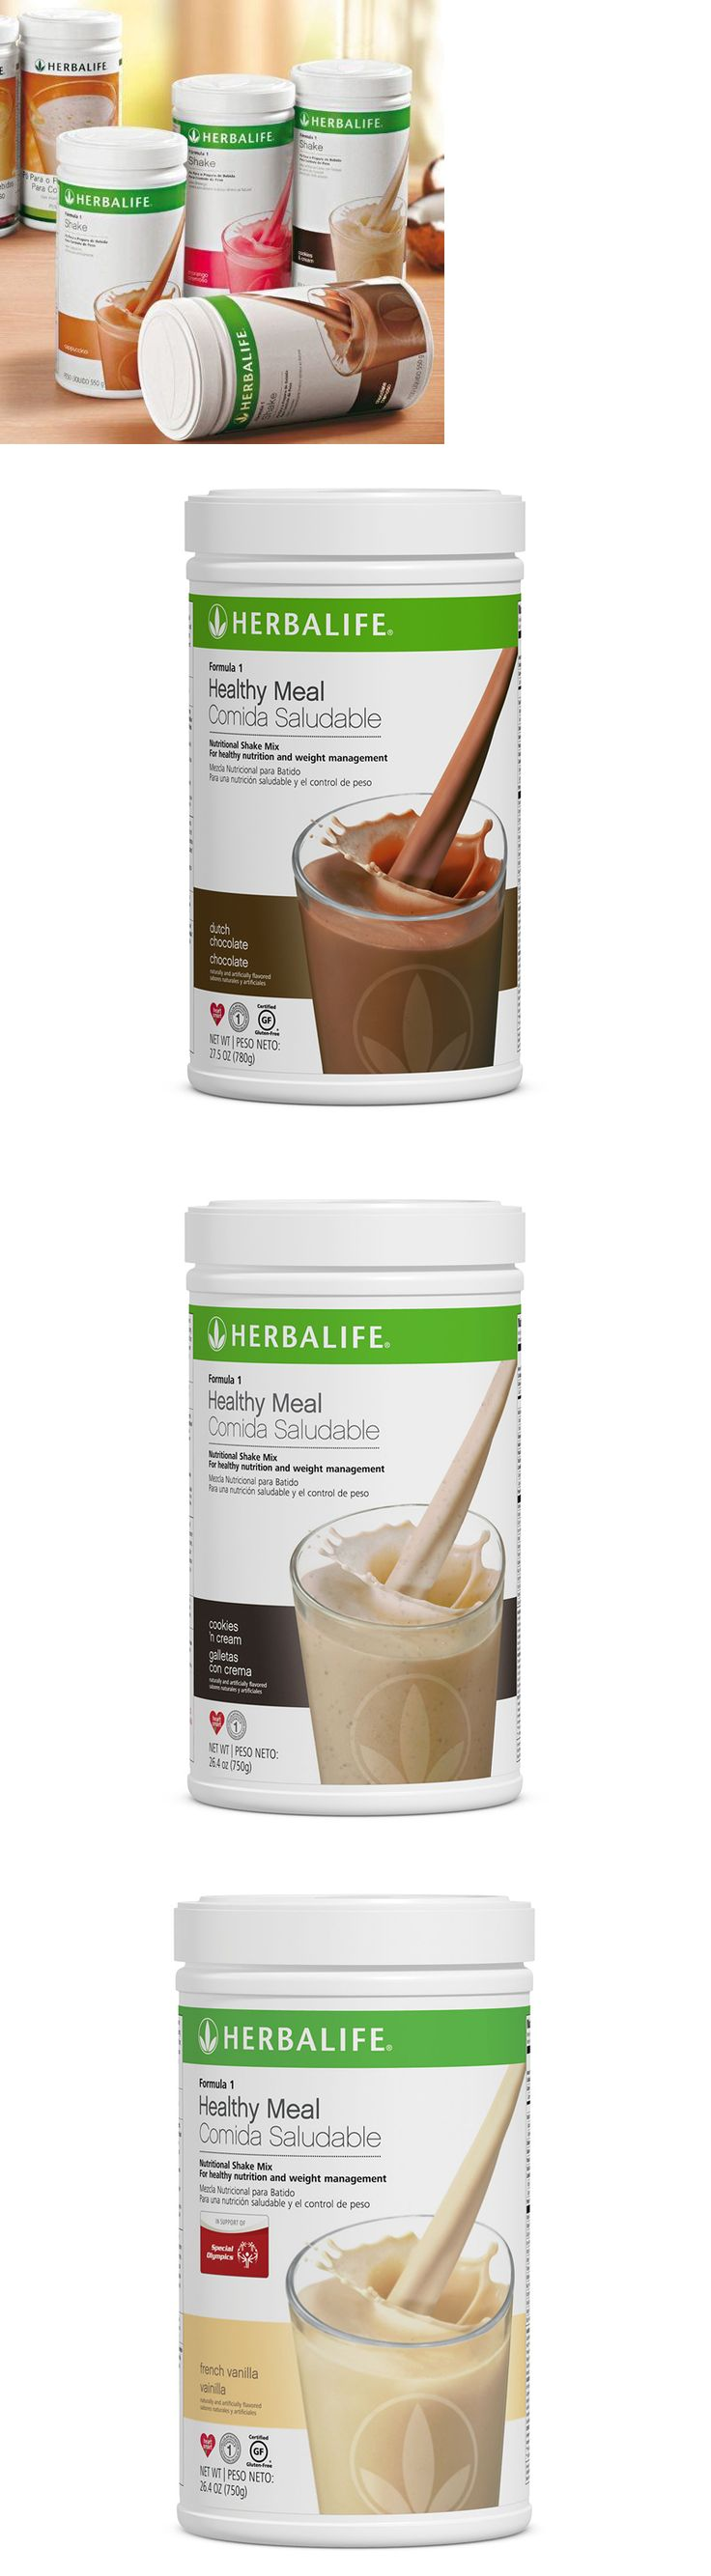 Meal Replacement Drinks: Formula 1 Healthy Meal Nutritional Shake Mix And More (All Flavors) *Free Shipping -> BUY IT NOW ONLY: $44.9 on eBay!